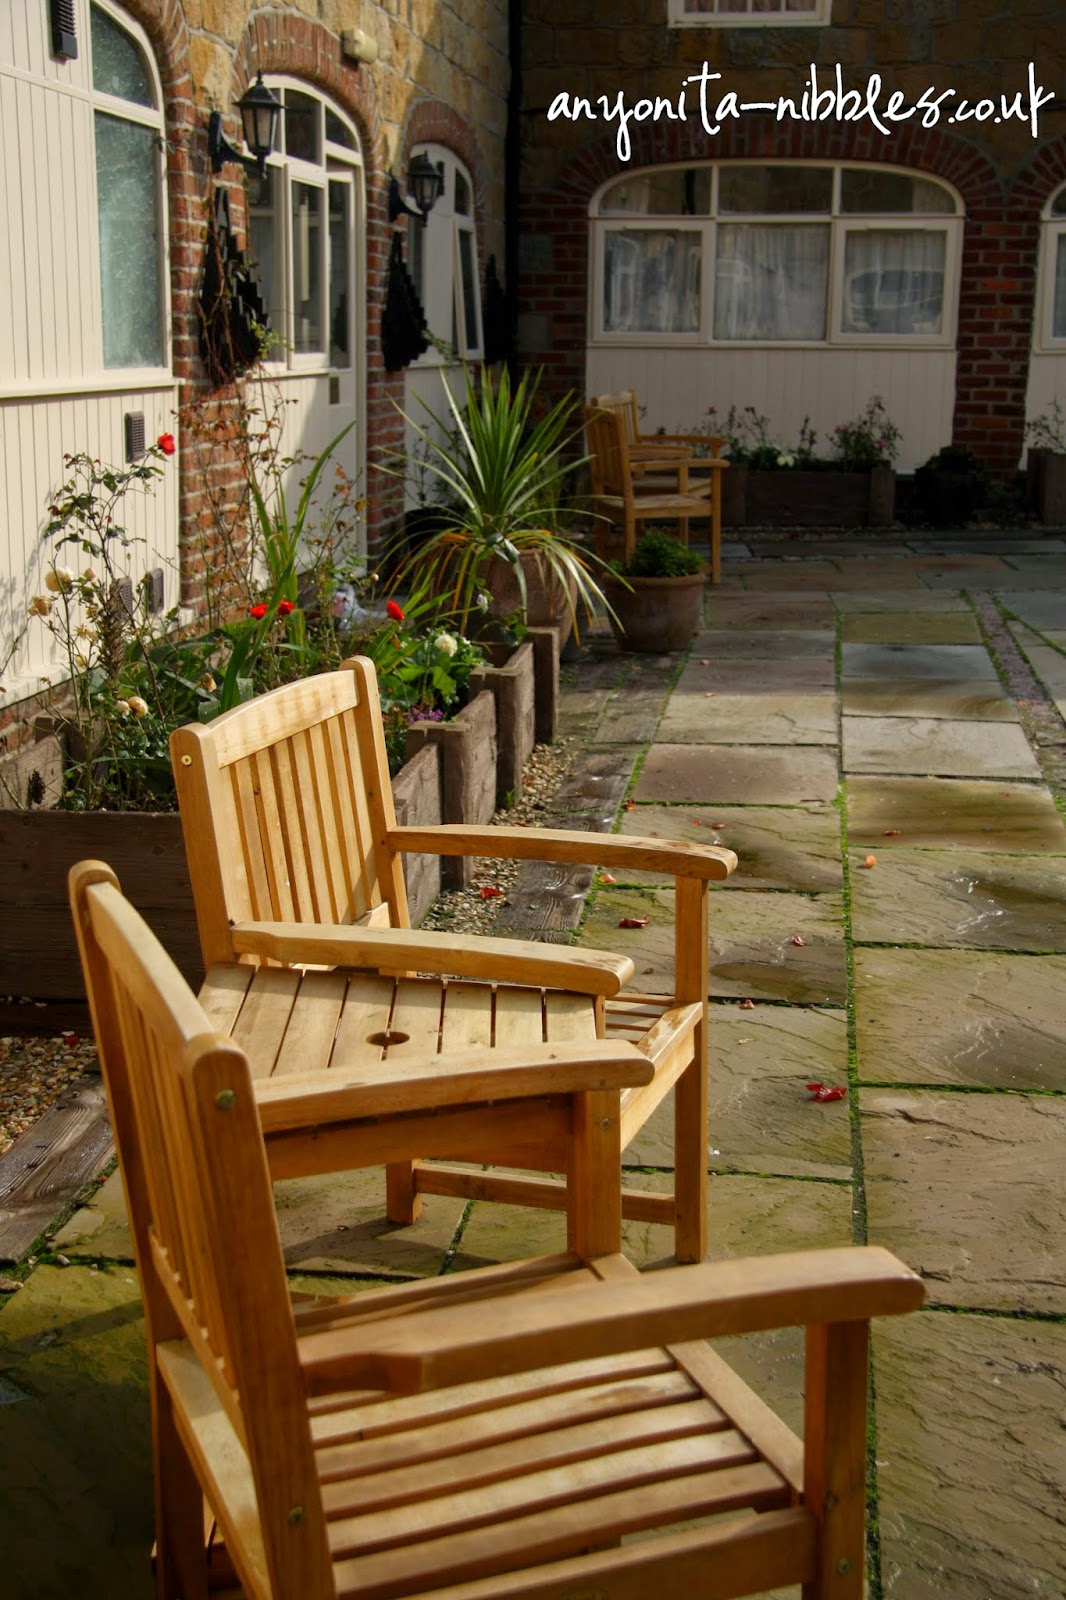 Enjoy the tranquil Ox Pasture Hall Hotel courtyard | Anyonita-nibbles.co.uk